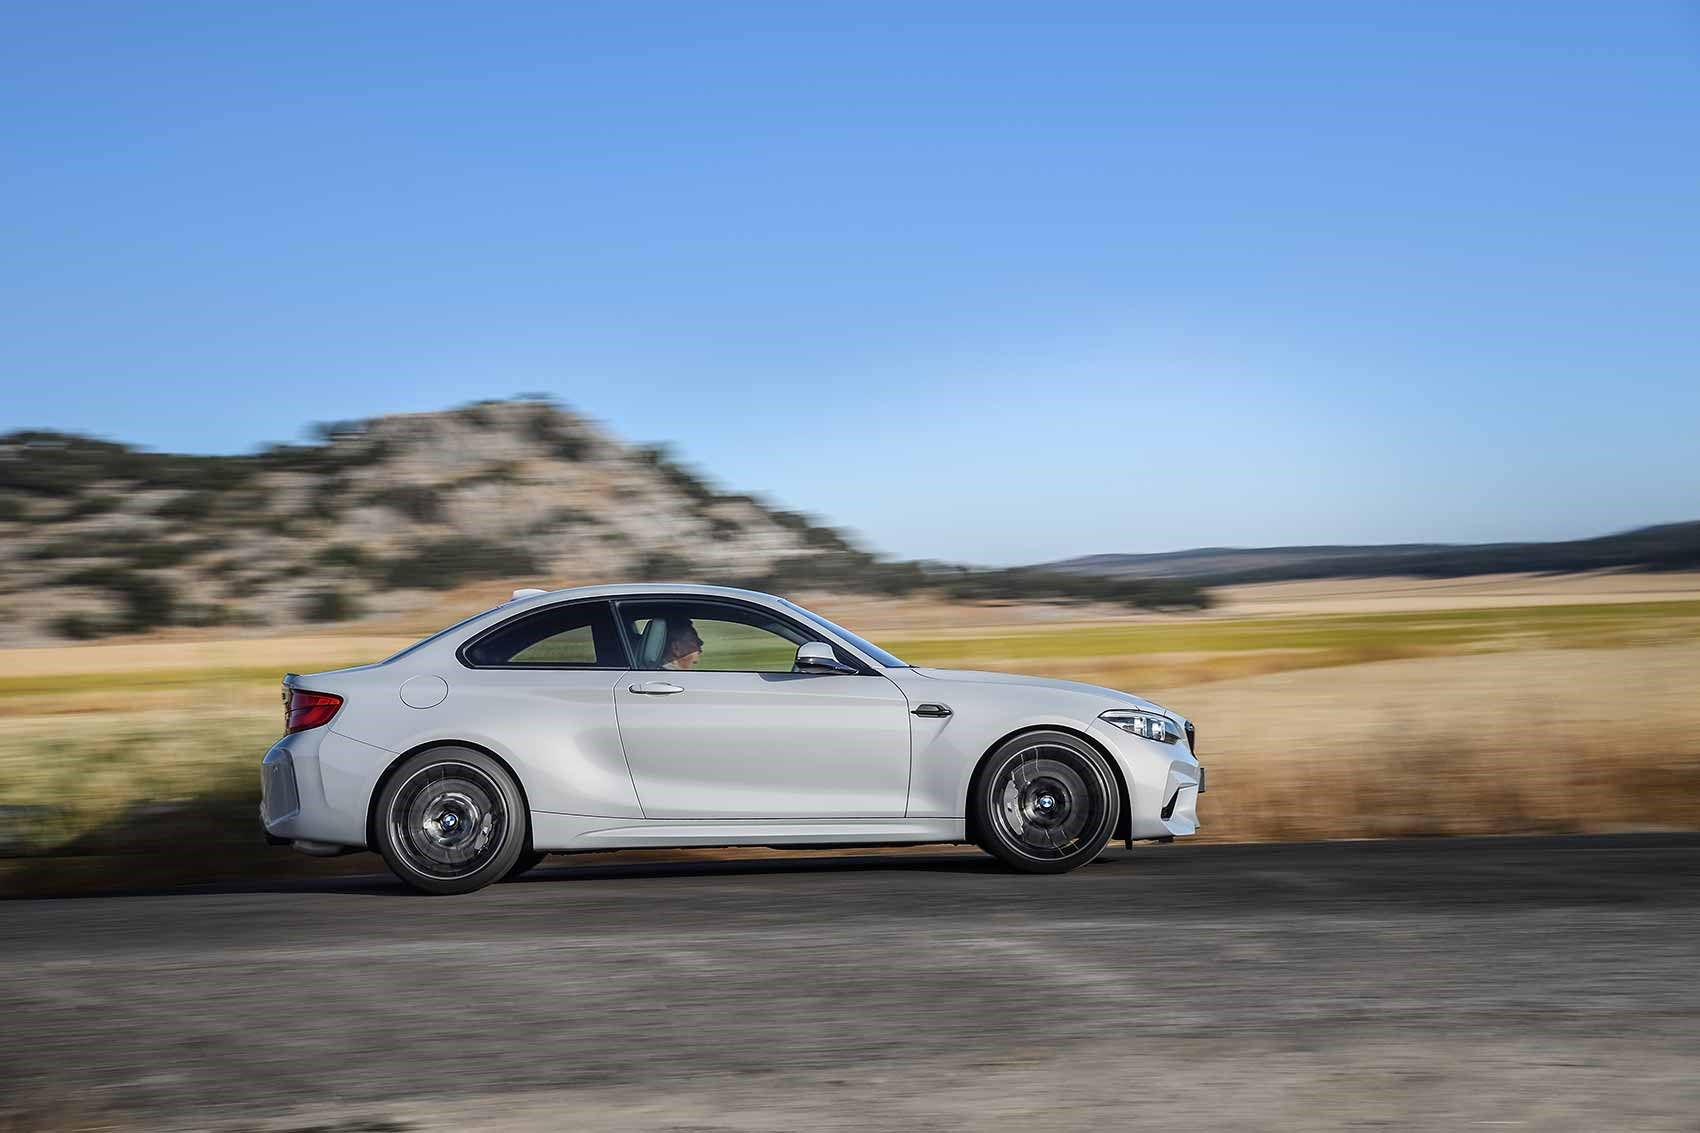 Georg Kacher drives the BMW M2 Competition for CAR magazine